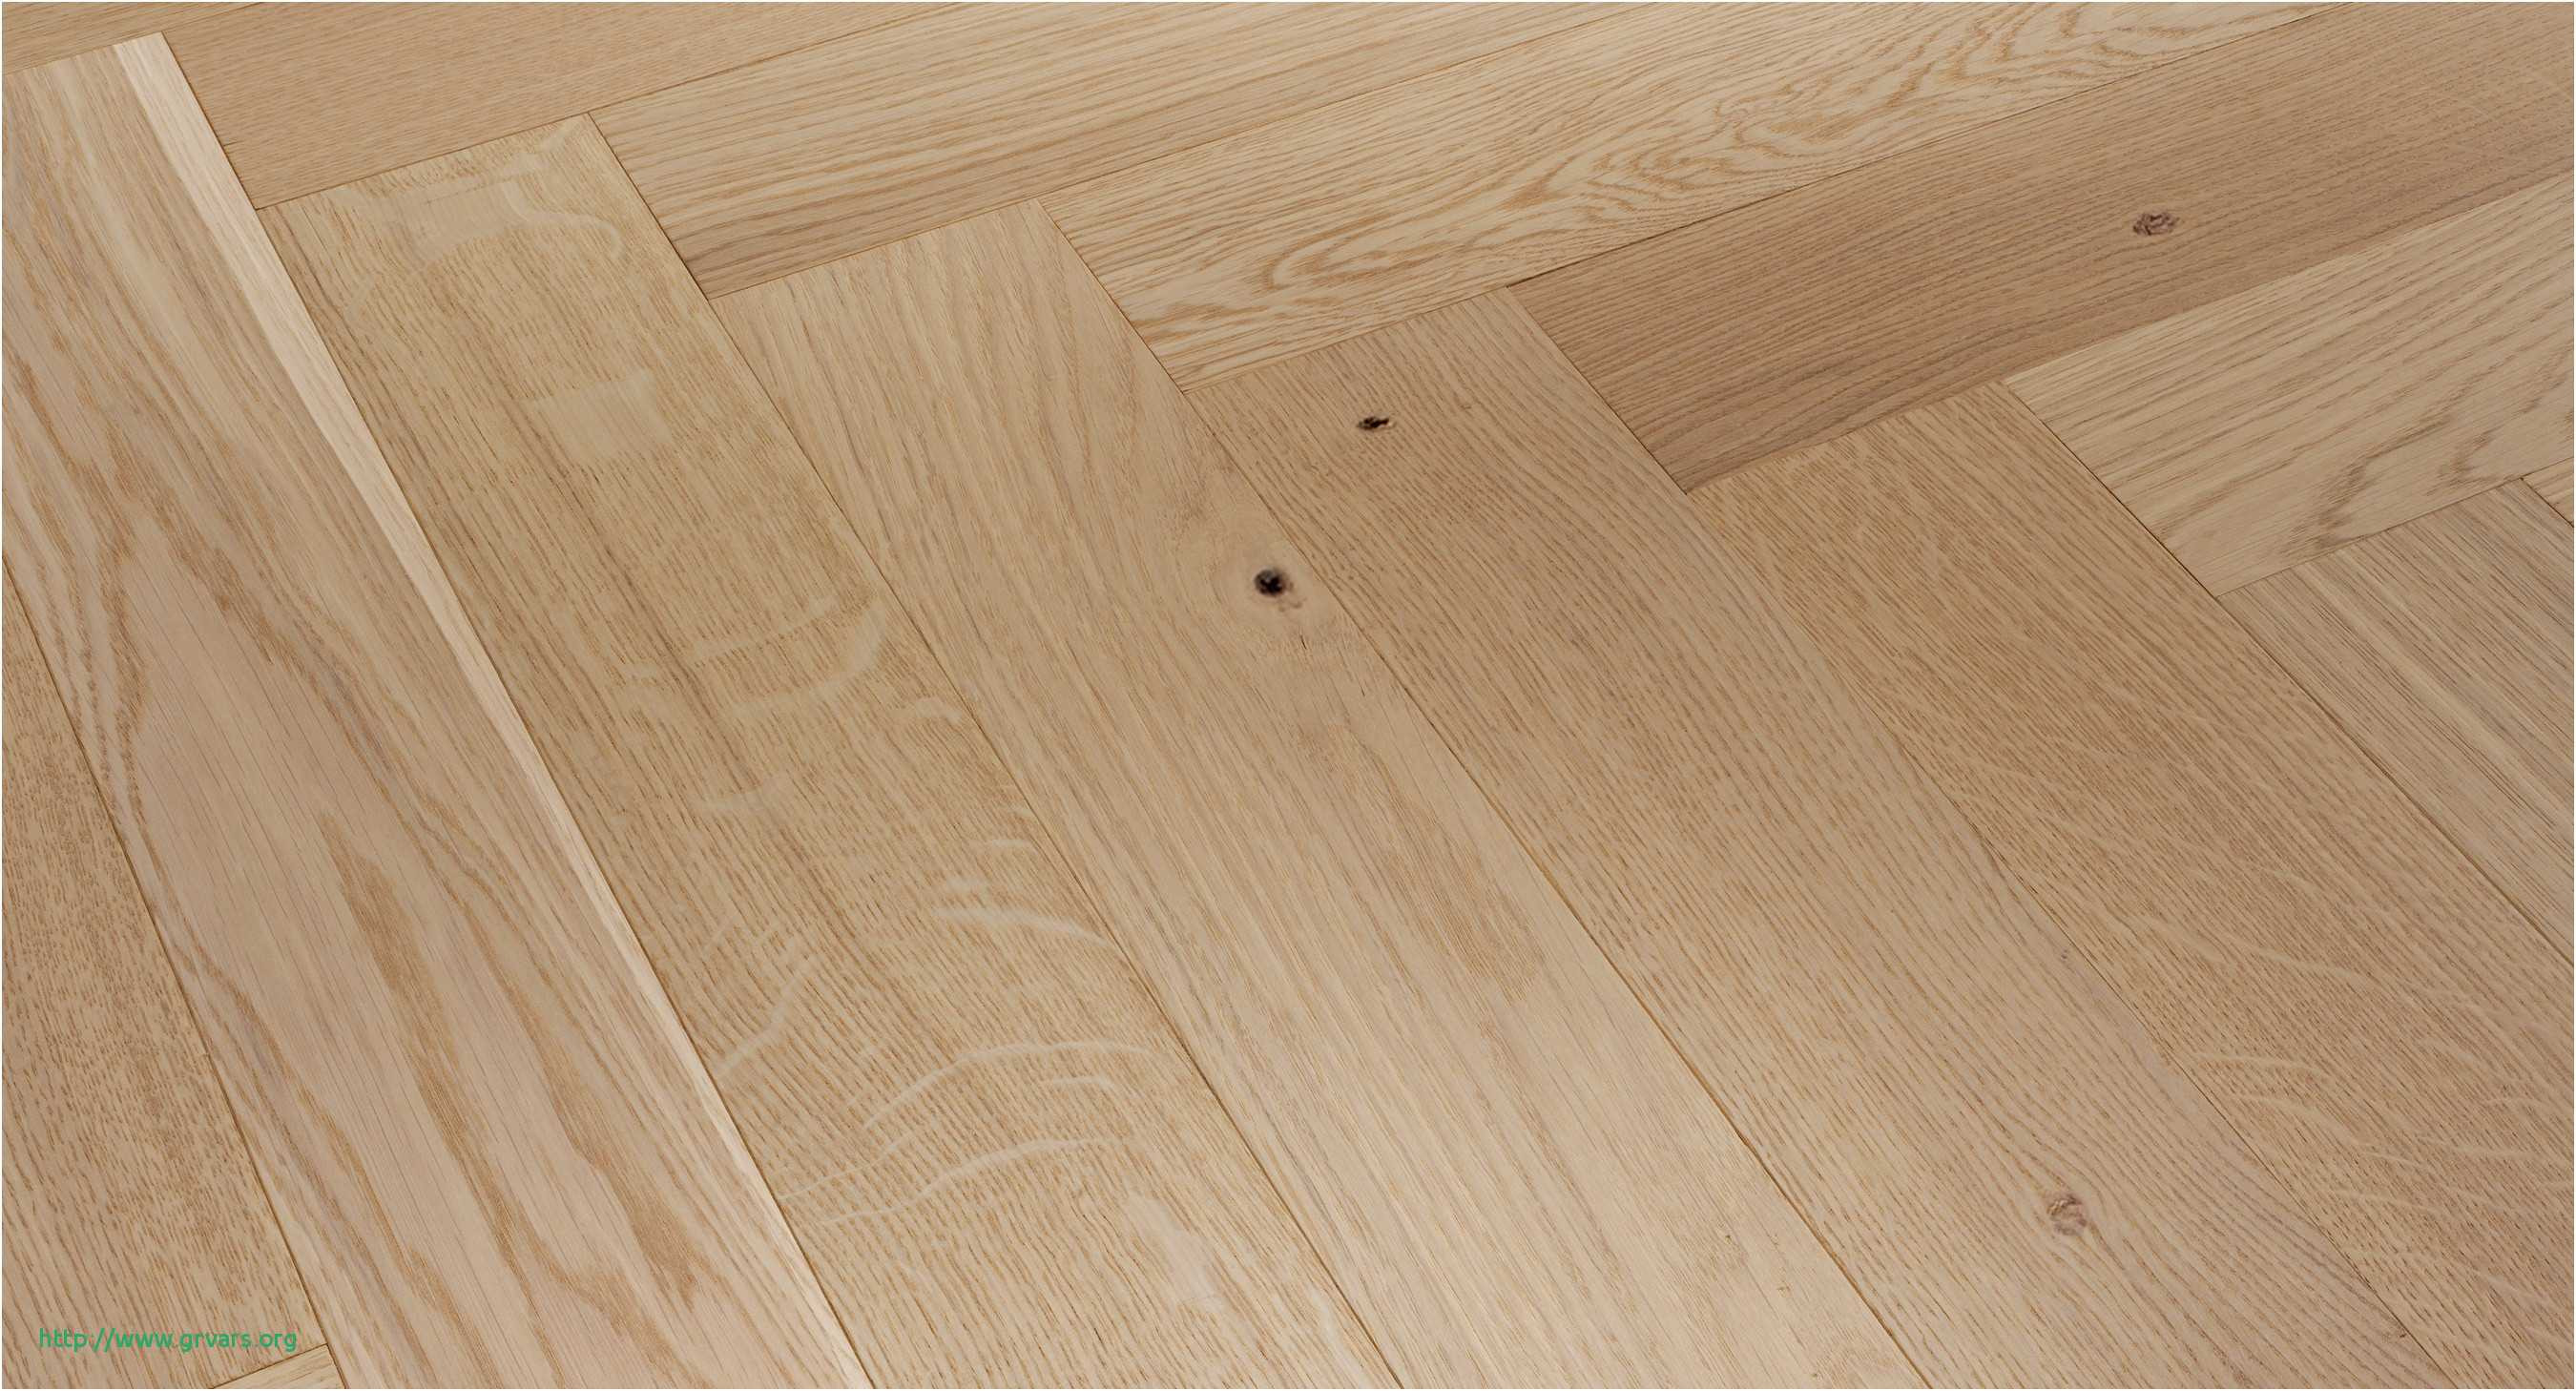 how to cut hardwood floor transition of 23 beau how to replace floor trim ideas blog for how to replace floor trim a‰lagant flooring near me flooring sale near me stock 0d grace